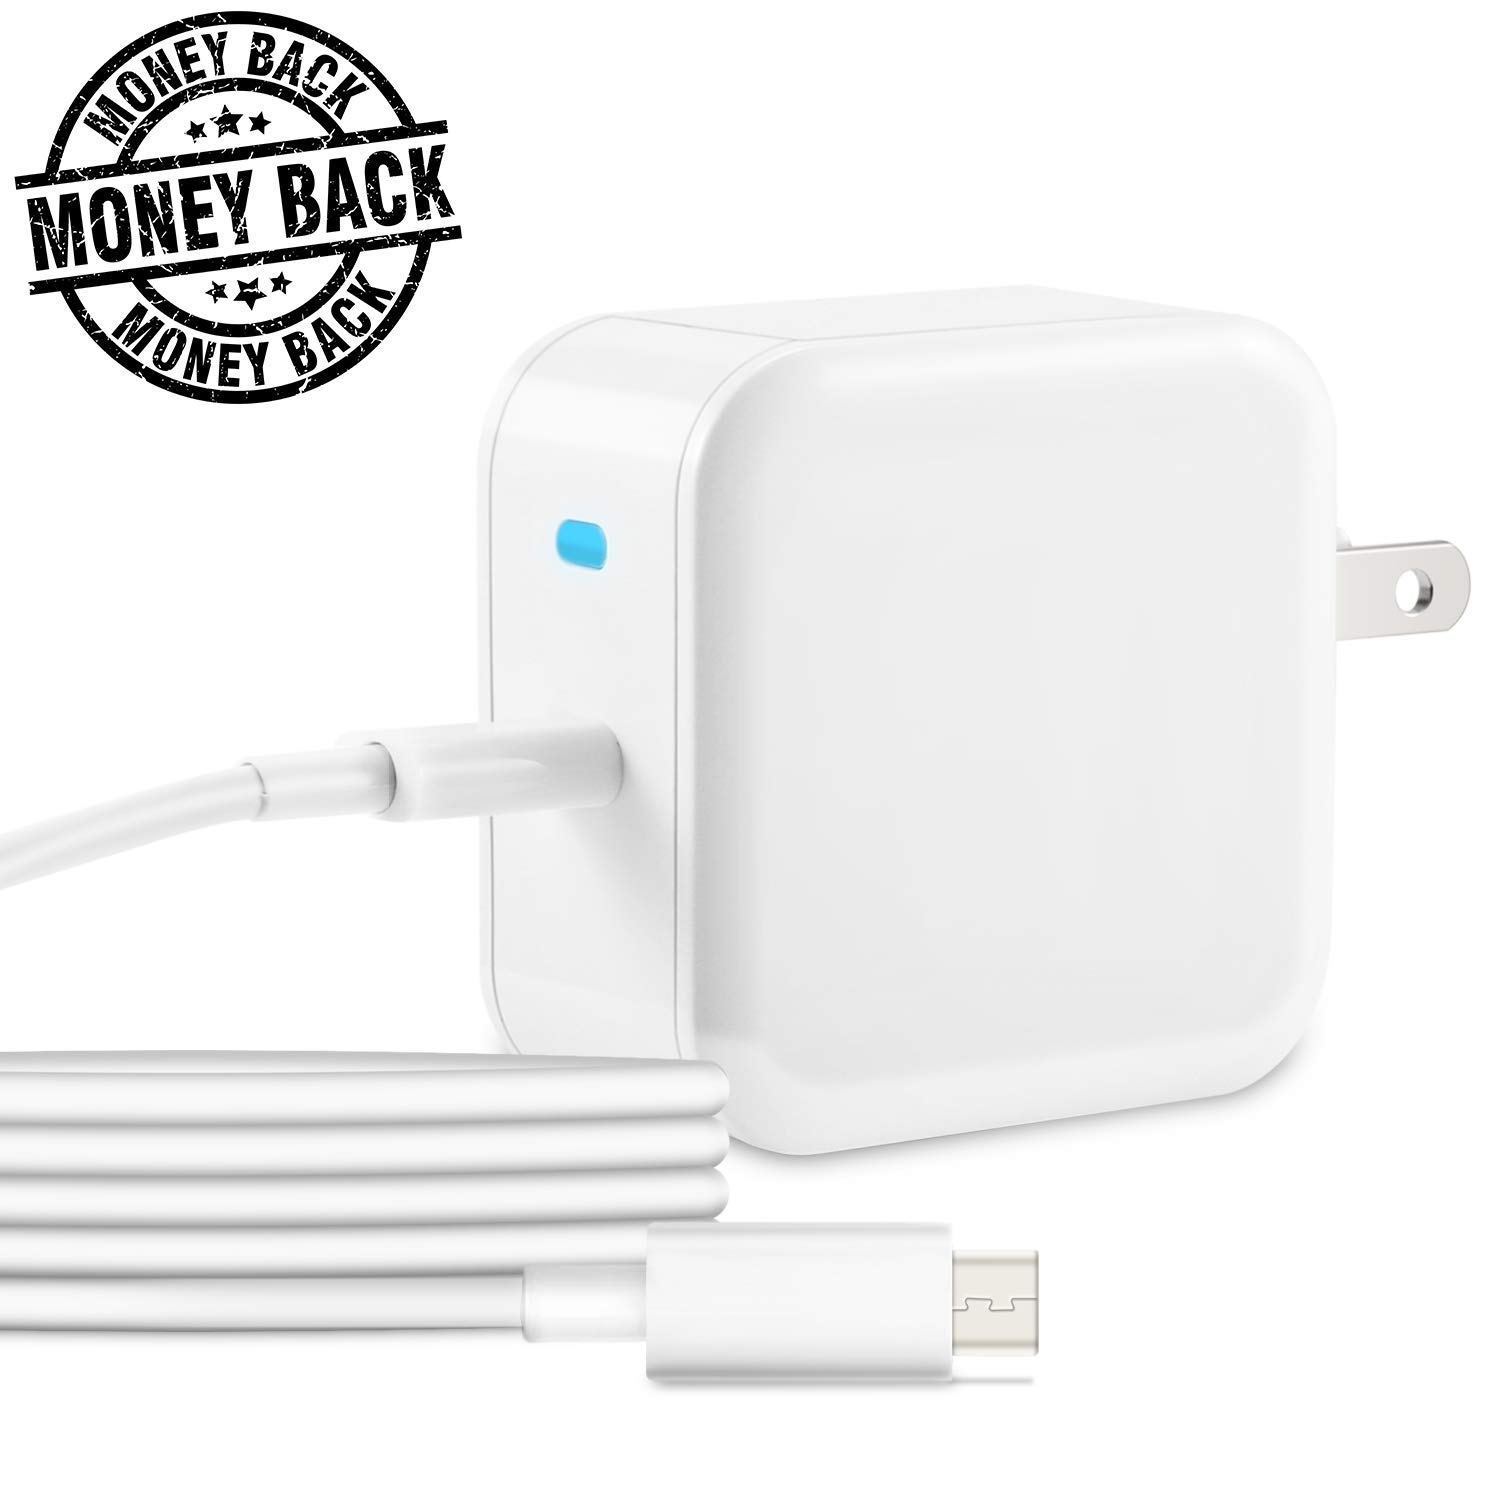 """USB C Charger,30w PD Fast Wall Charger for Macbook 12"""",QC 3.0 USB C Power Adapter Quick Charge to pixel 2,nintendo switch.Android Wall plug for samsung s8,Huawei P9/P10,nexus 6p,more usb c smartphone."""